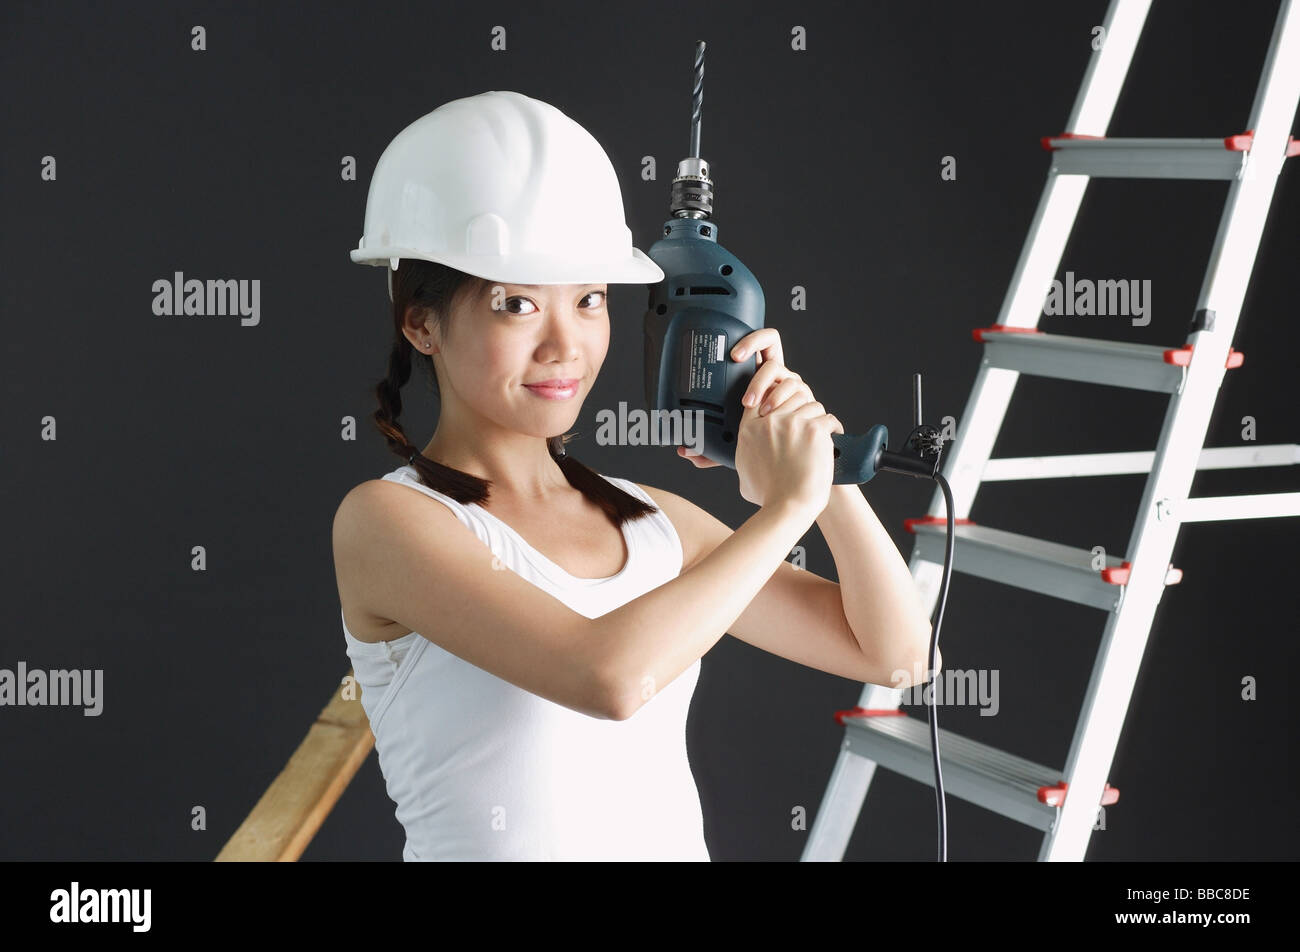 Young woman wearing hard hat, holding drill - Stock Image